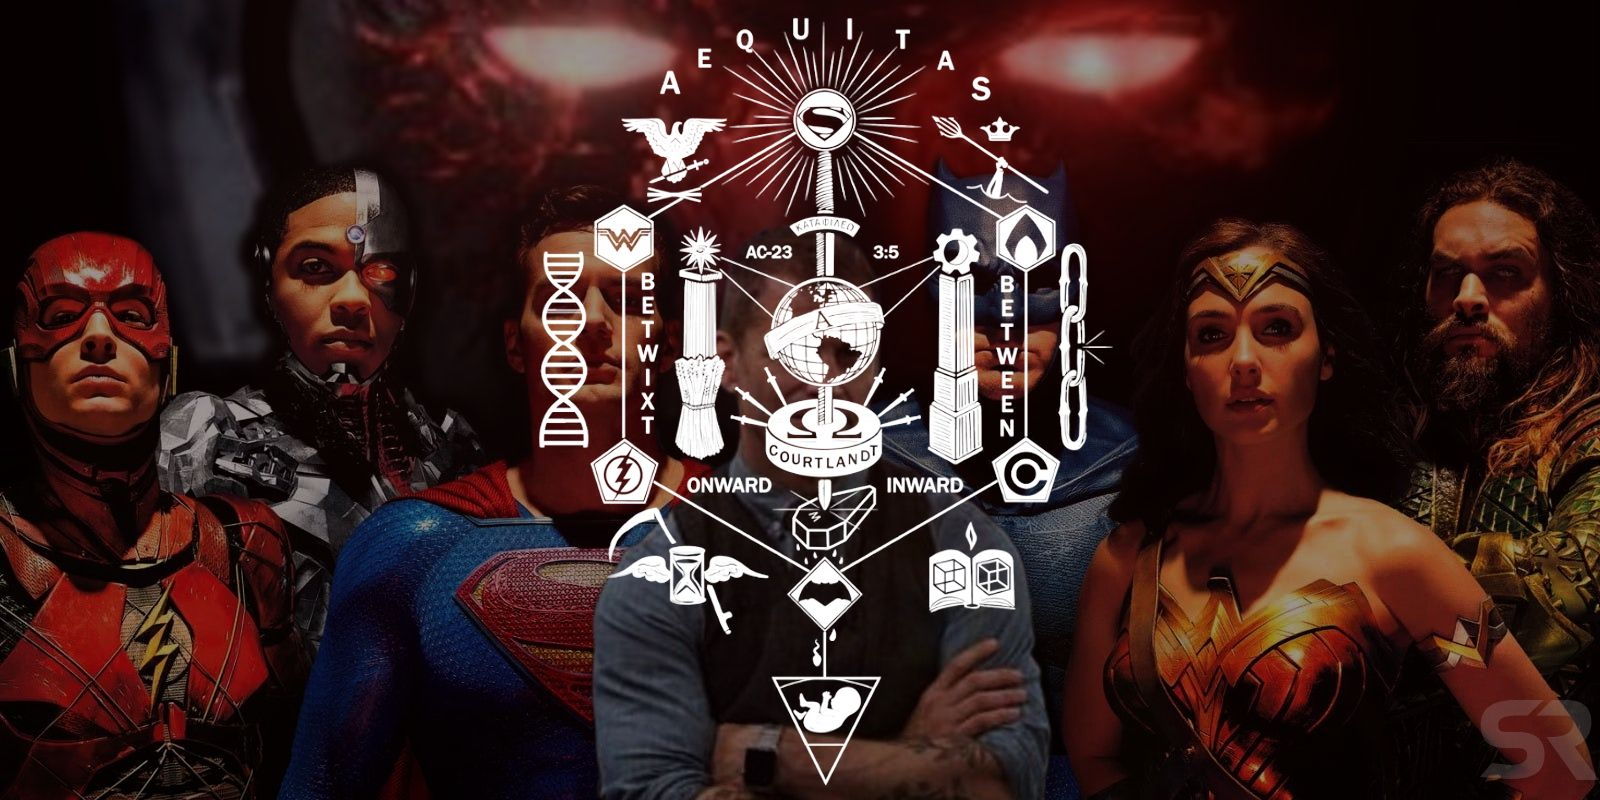 Zack Snyder's Original Justice League Plans Revealed in Cryptic Puzzle